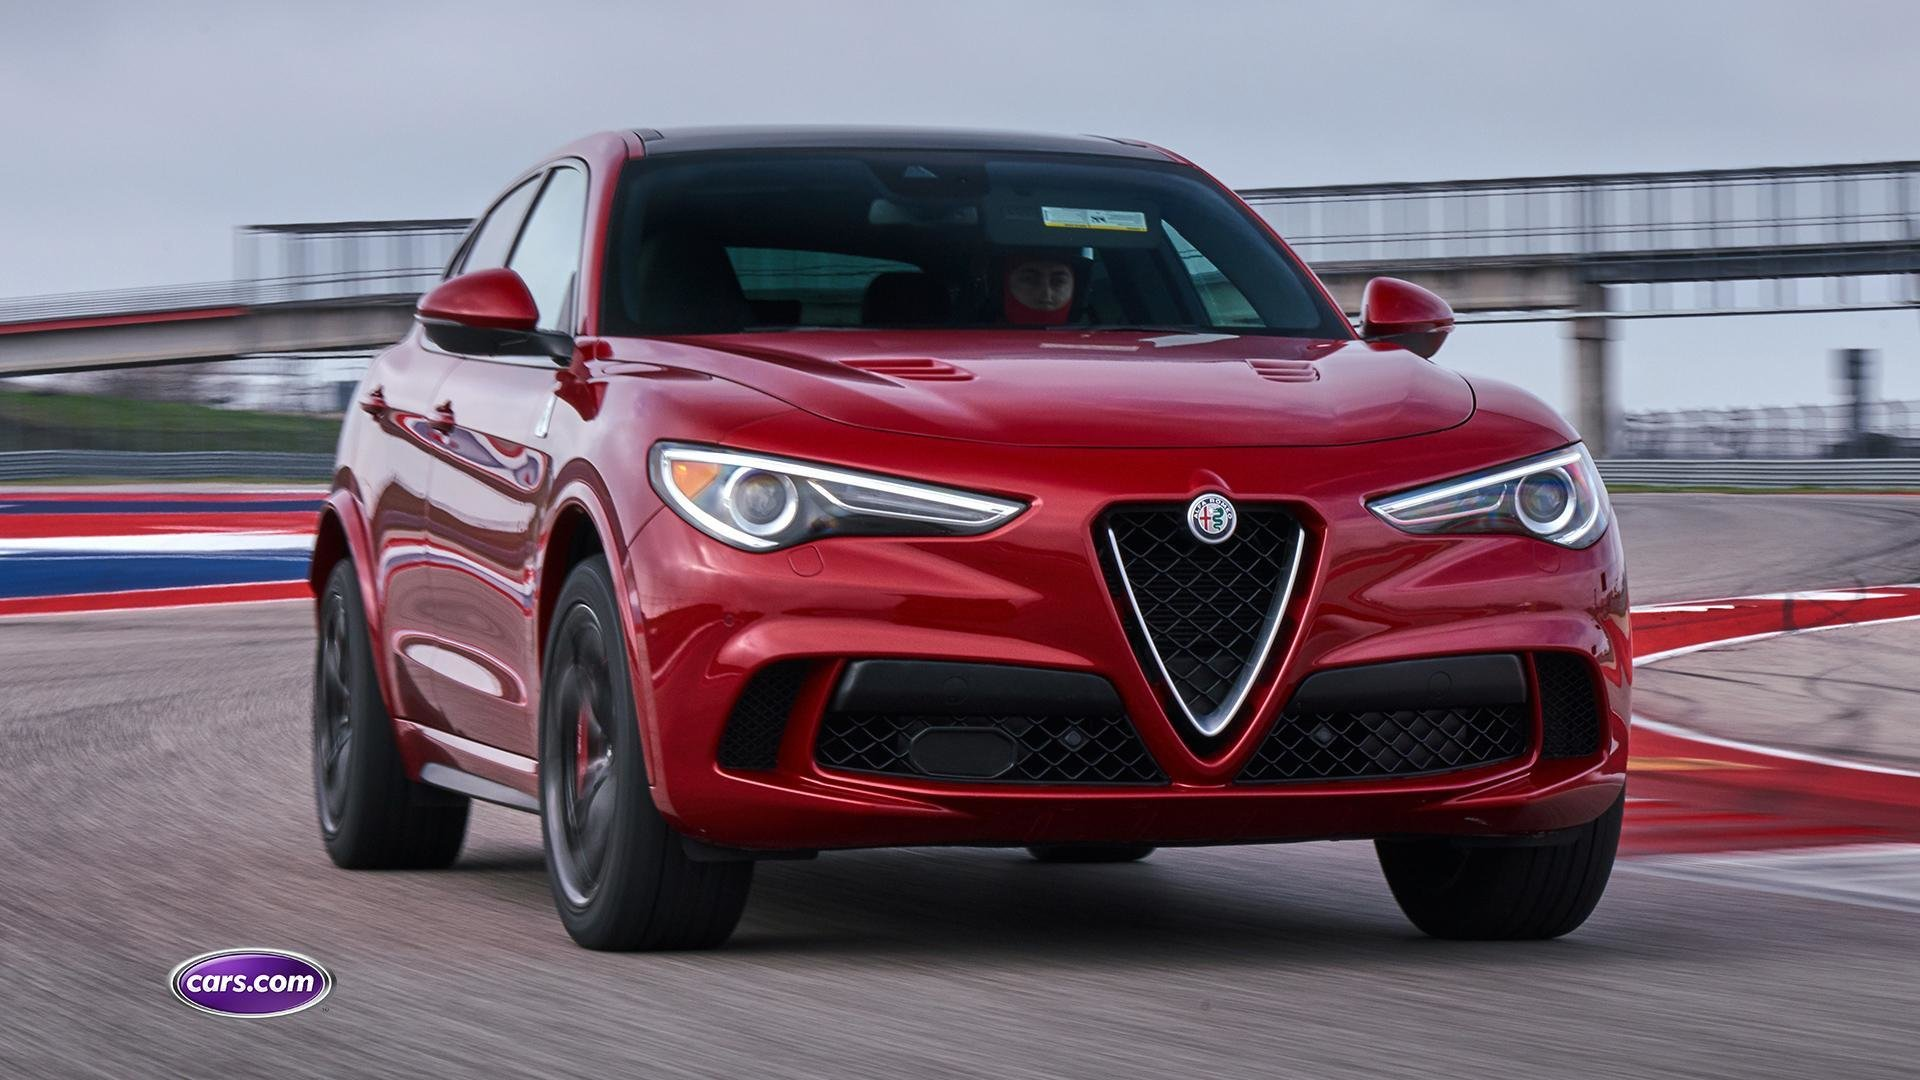 Latest Alfa Romeo Latest Models Pricing Mpg And Ratings Free Download